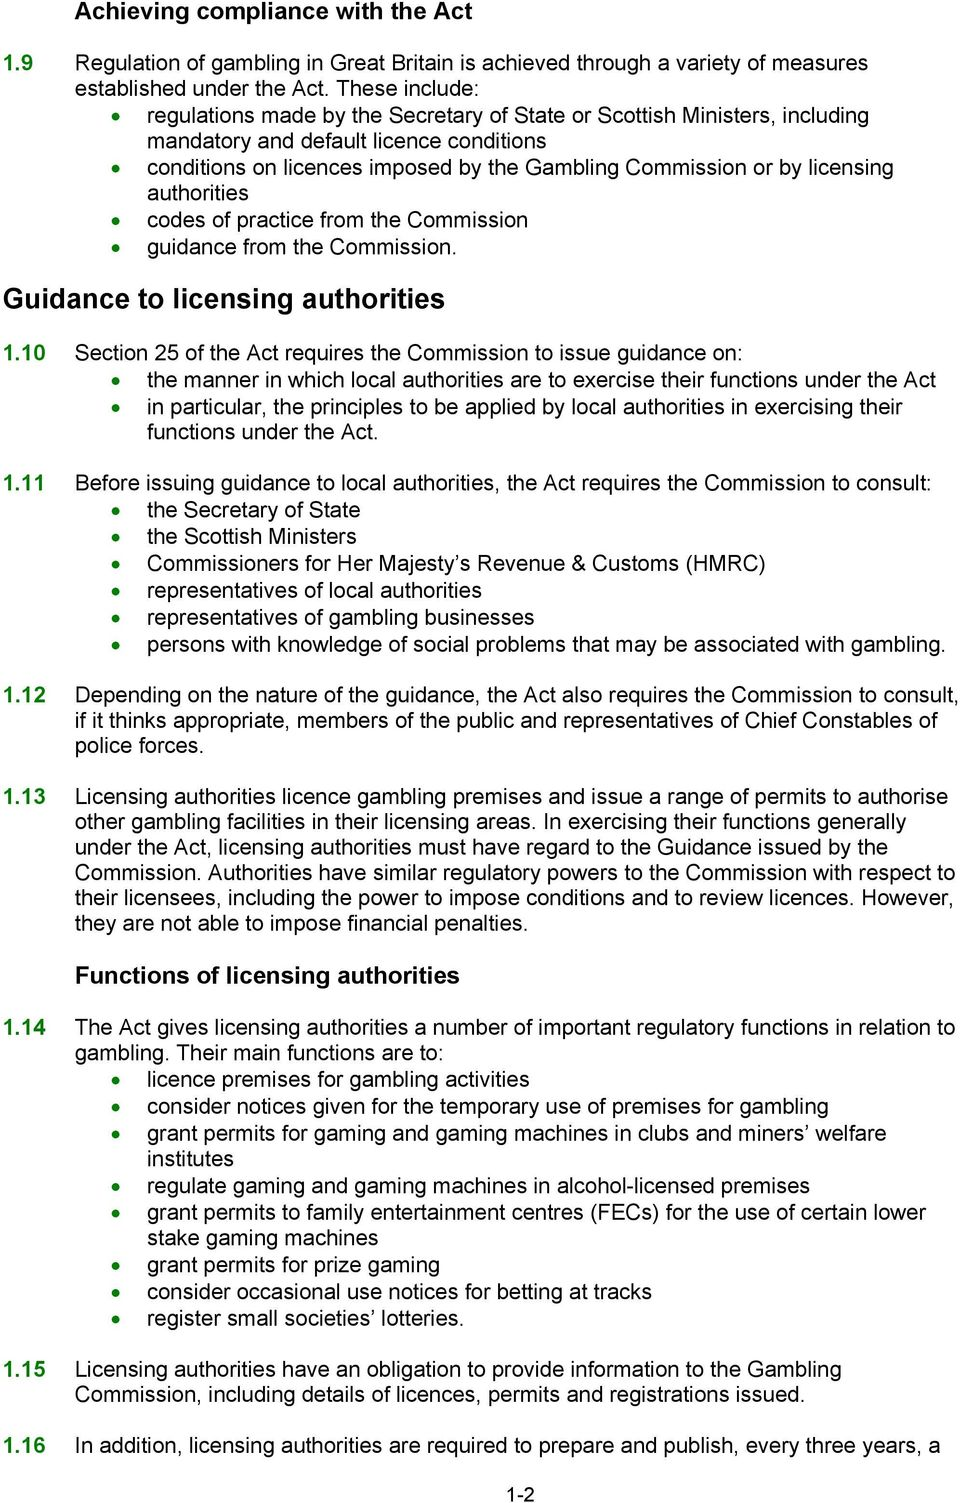 licensing authorities codes of practice from the Commission guidance from the Commission. Guidance to licensing authorities 1.